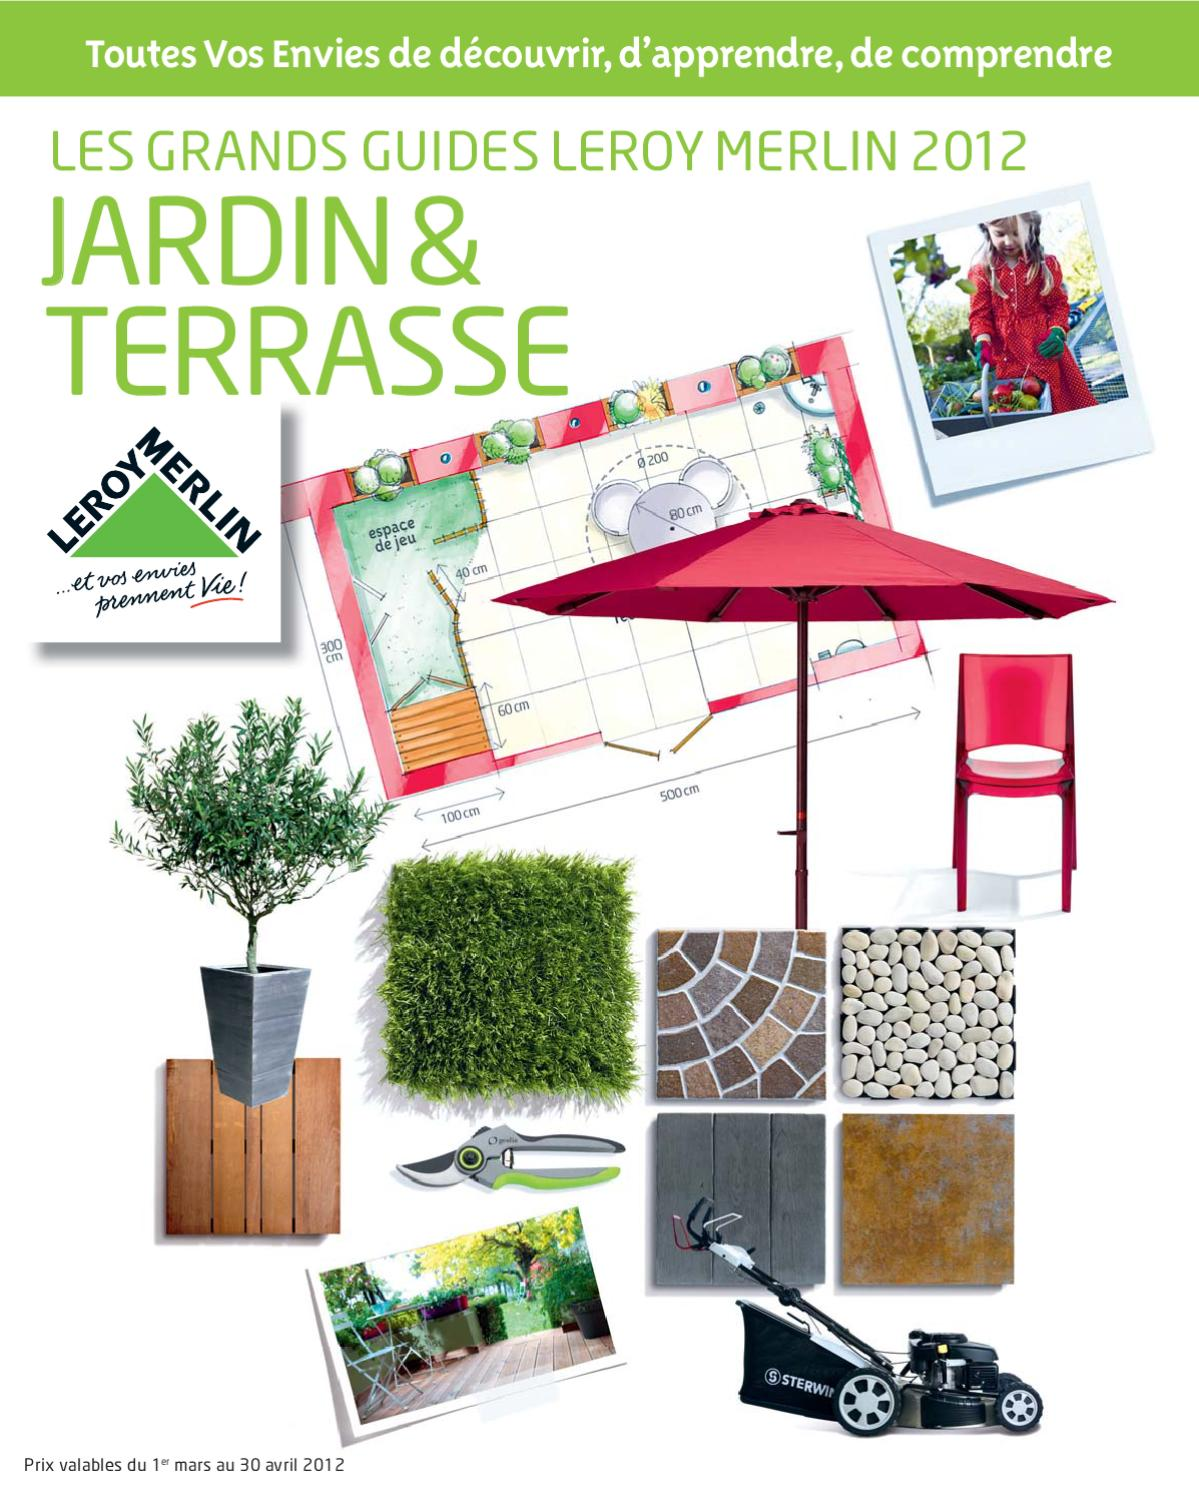 Issuu catalogue jardin leroy merlin by marcel for Catalogue leroy merlin jardin